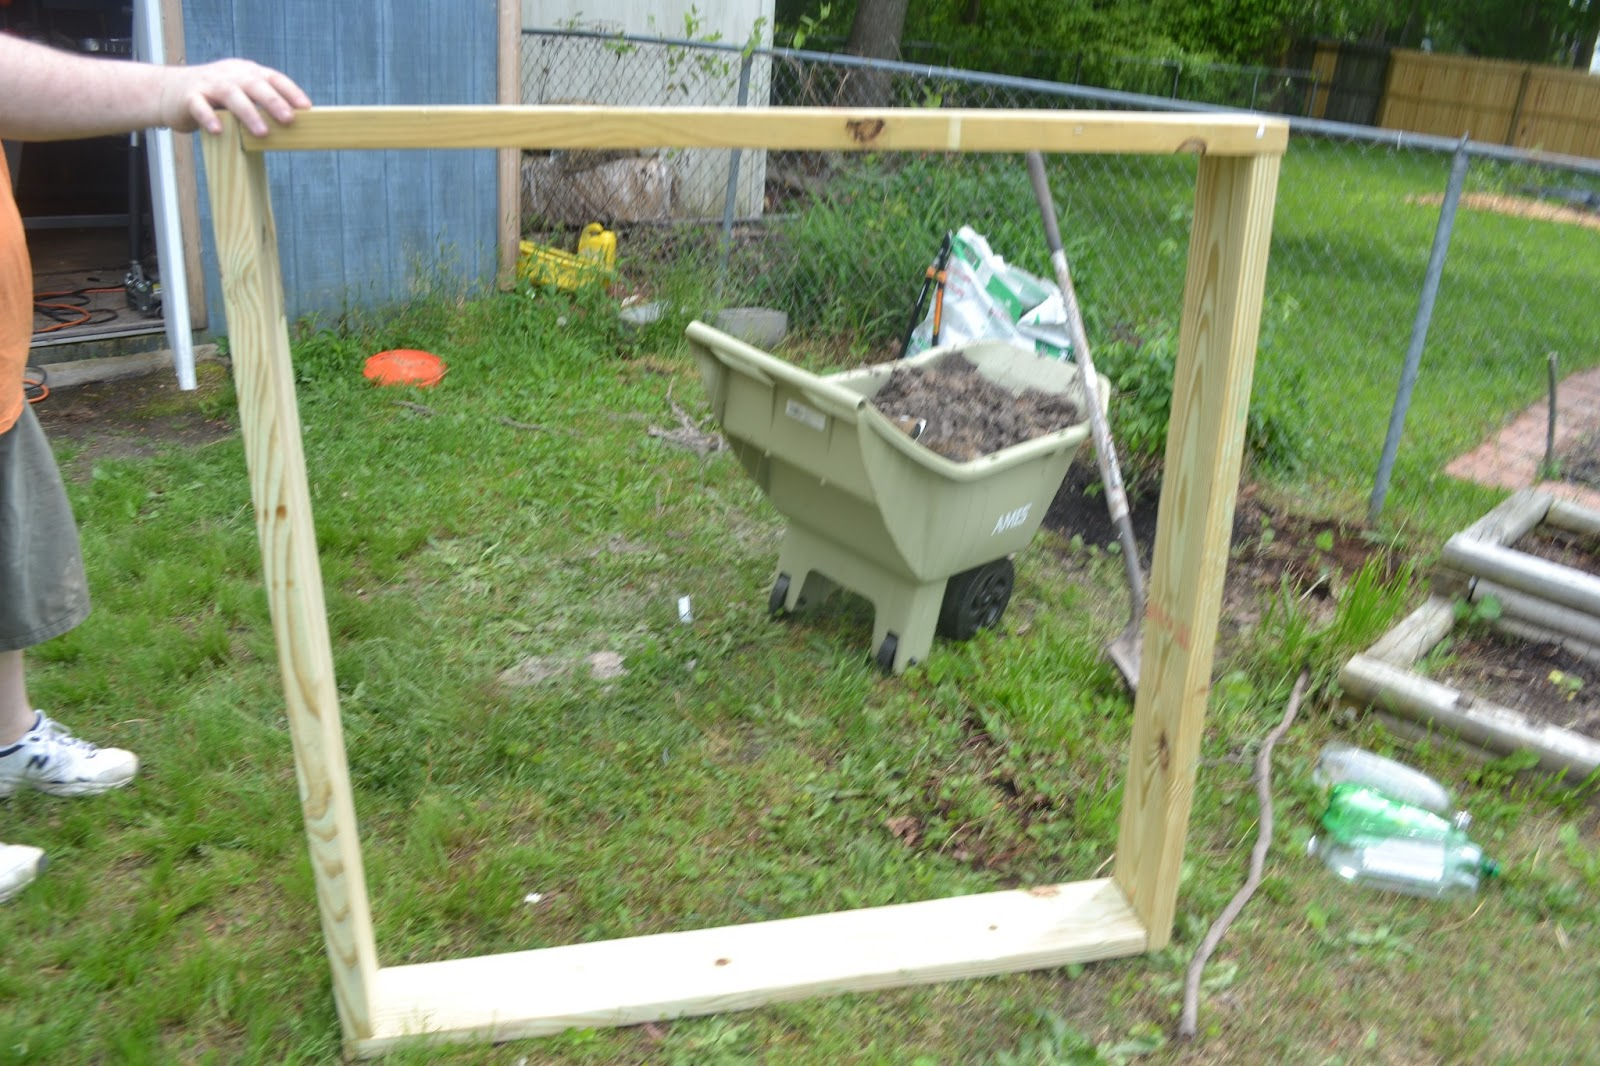 The Frugal Pantry 10 Dollar Square Foot Garden